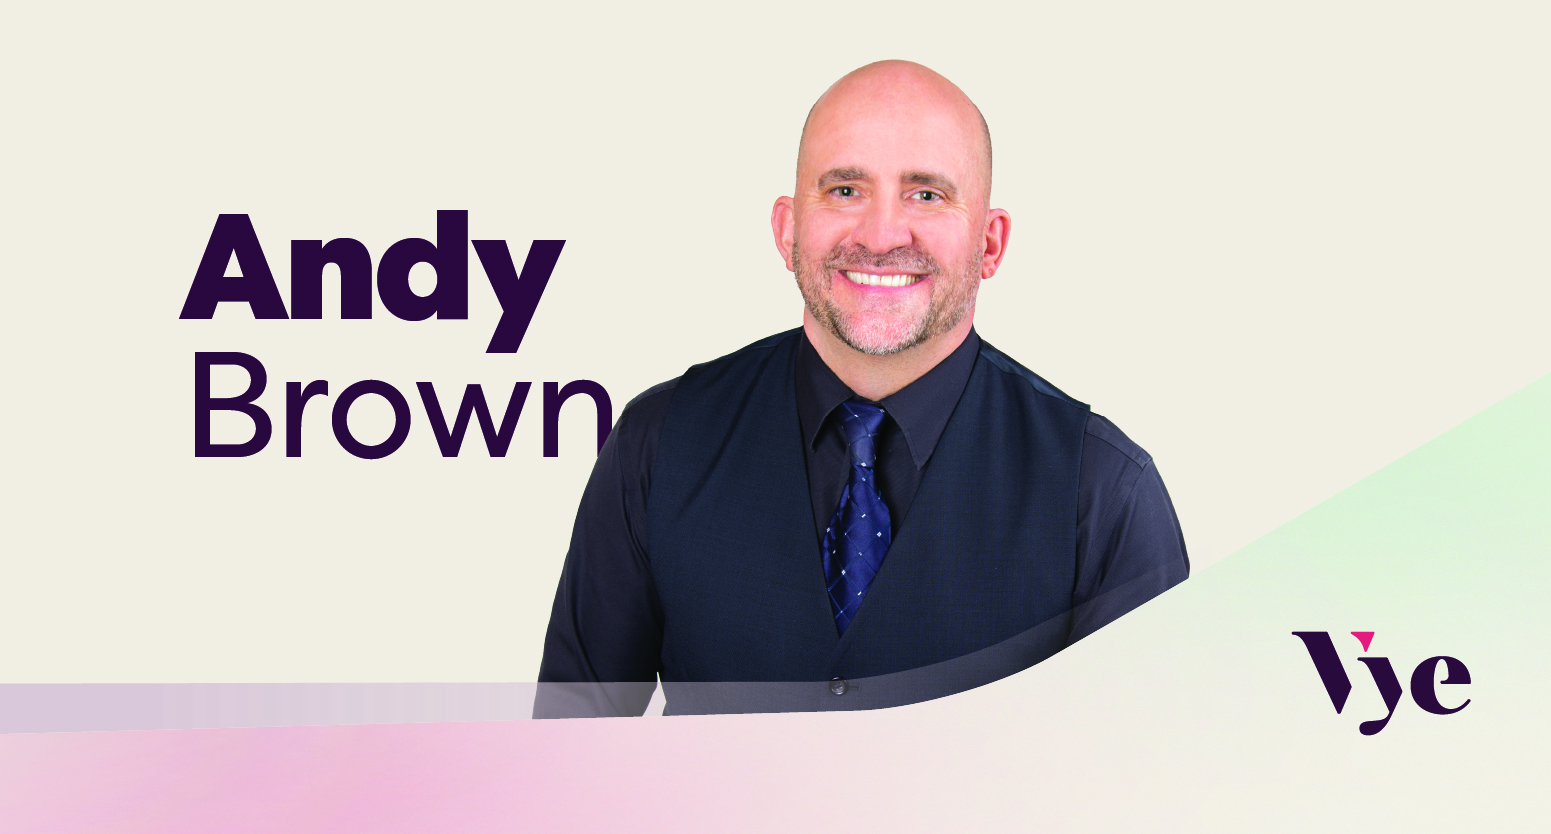 Meet Andy Brown